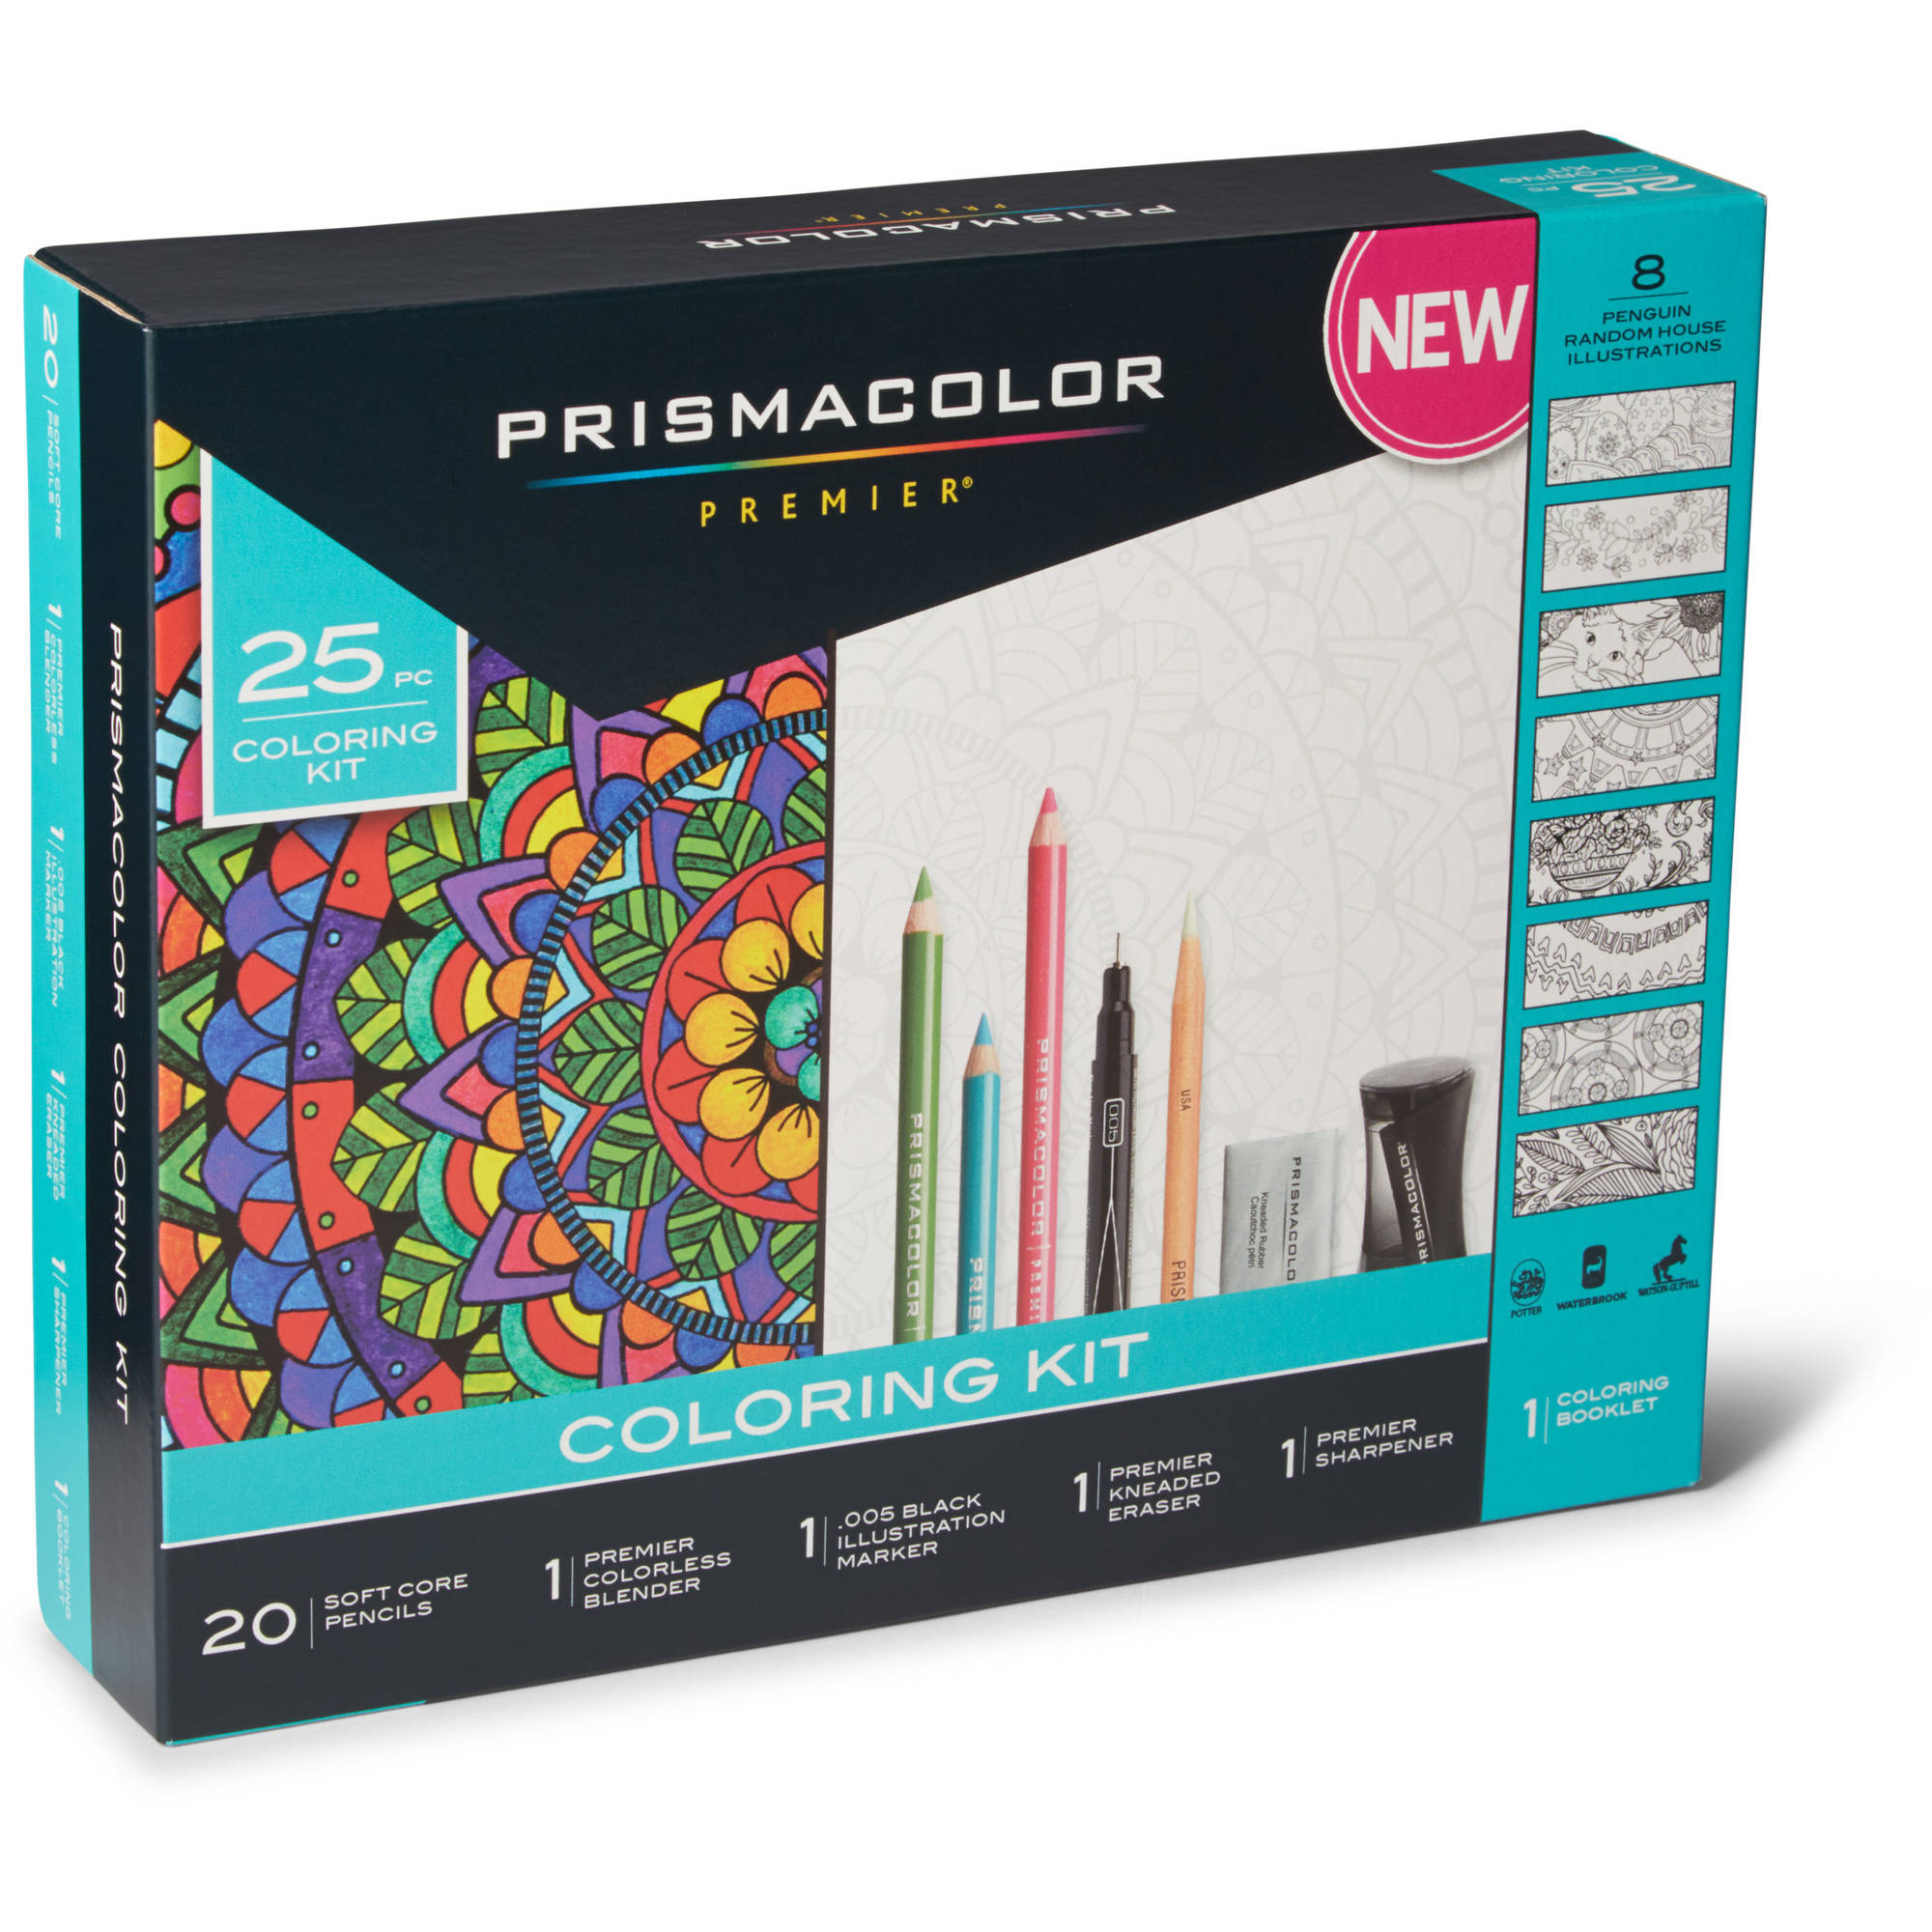 - Prismacolor Premier Coloring Book Kit, 25 Piece Set - Walmart.com -  Walmart.com